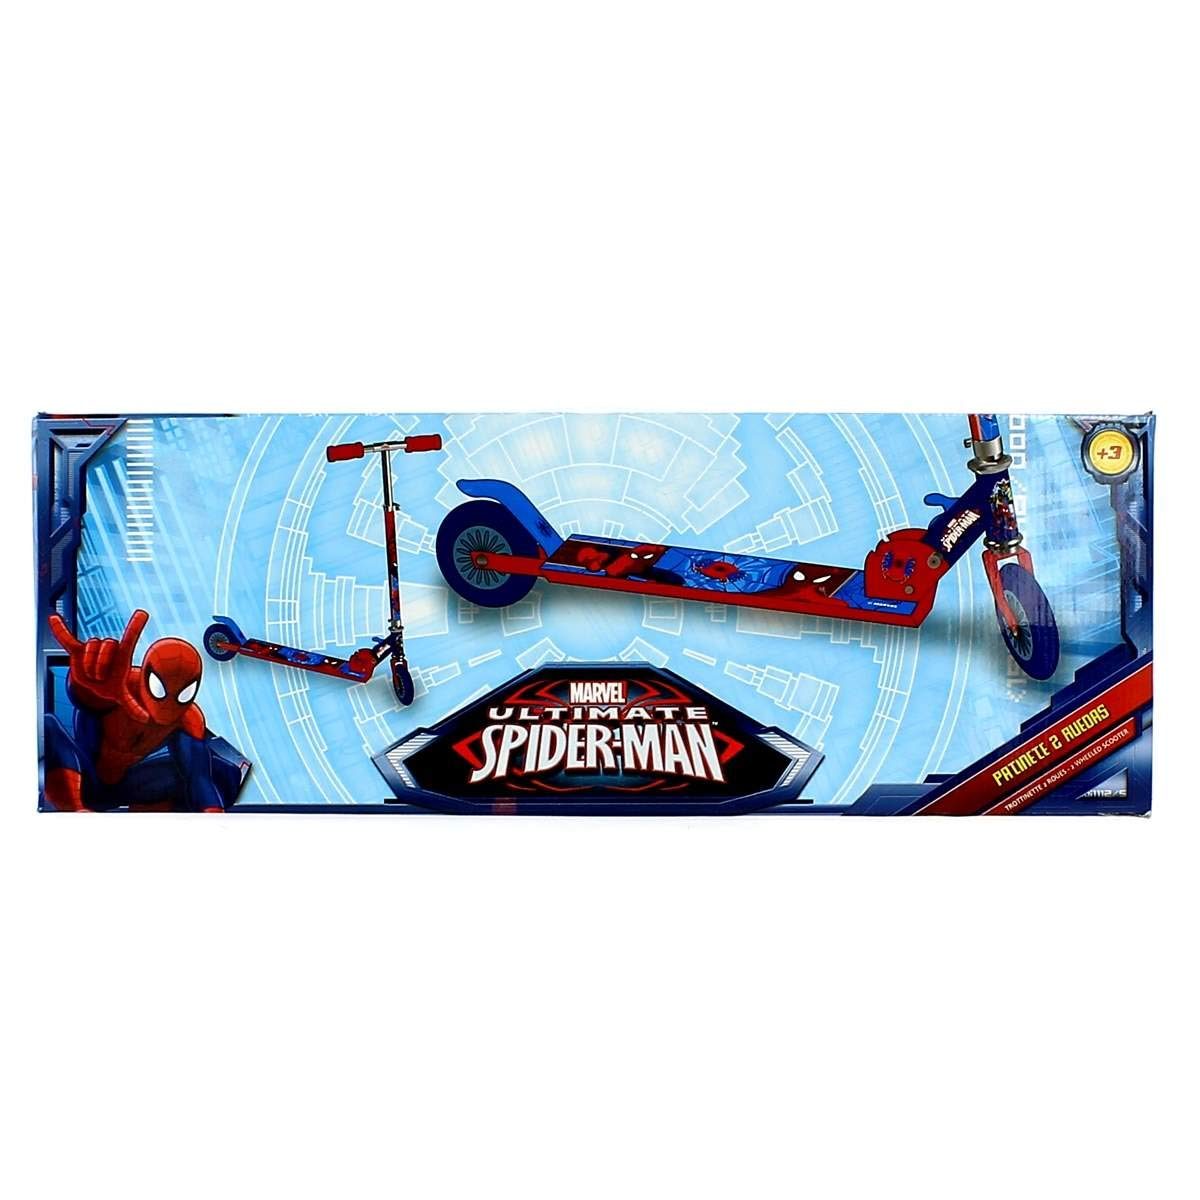 Muñecas Saica Spiderman Patinete 2 Ruedas: Amazon.es ...